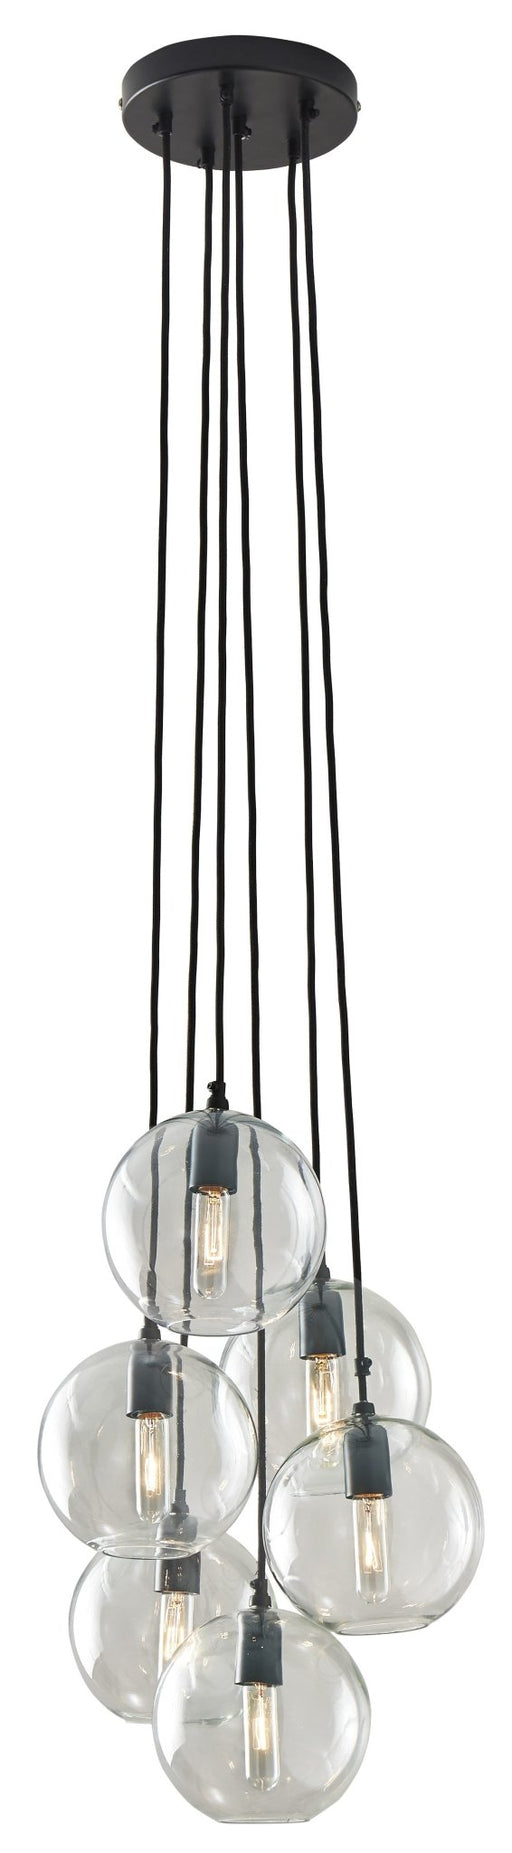 Sybil Glass Pendant Light - Austin's Couch Potatoes Furniture